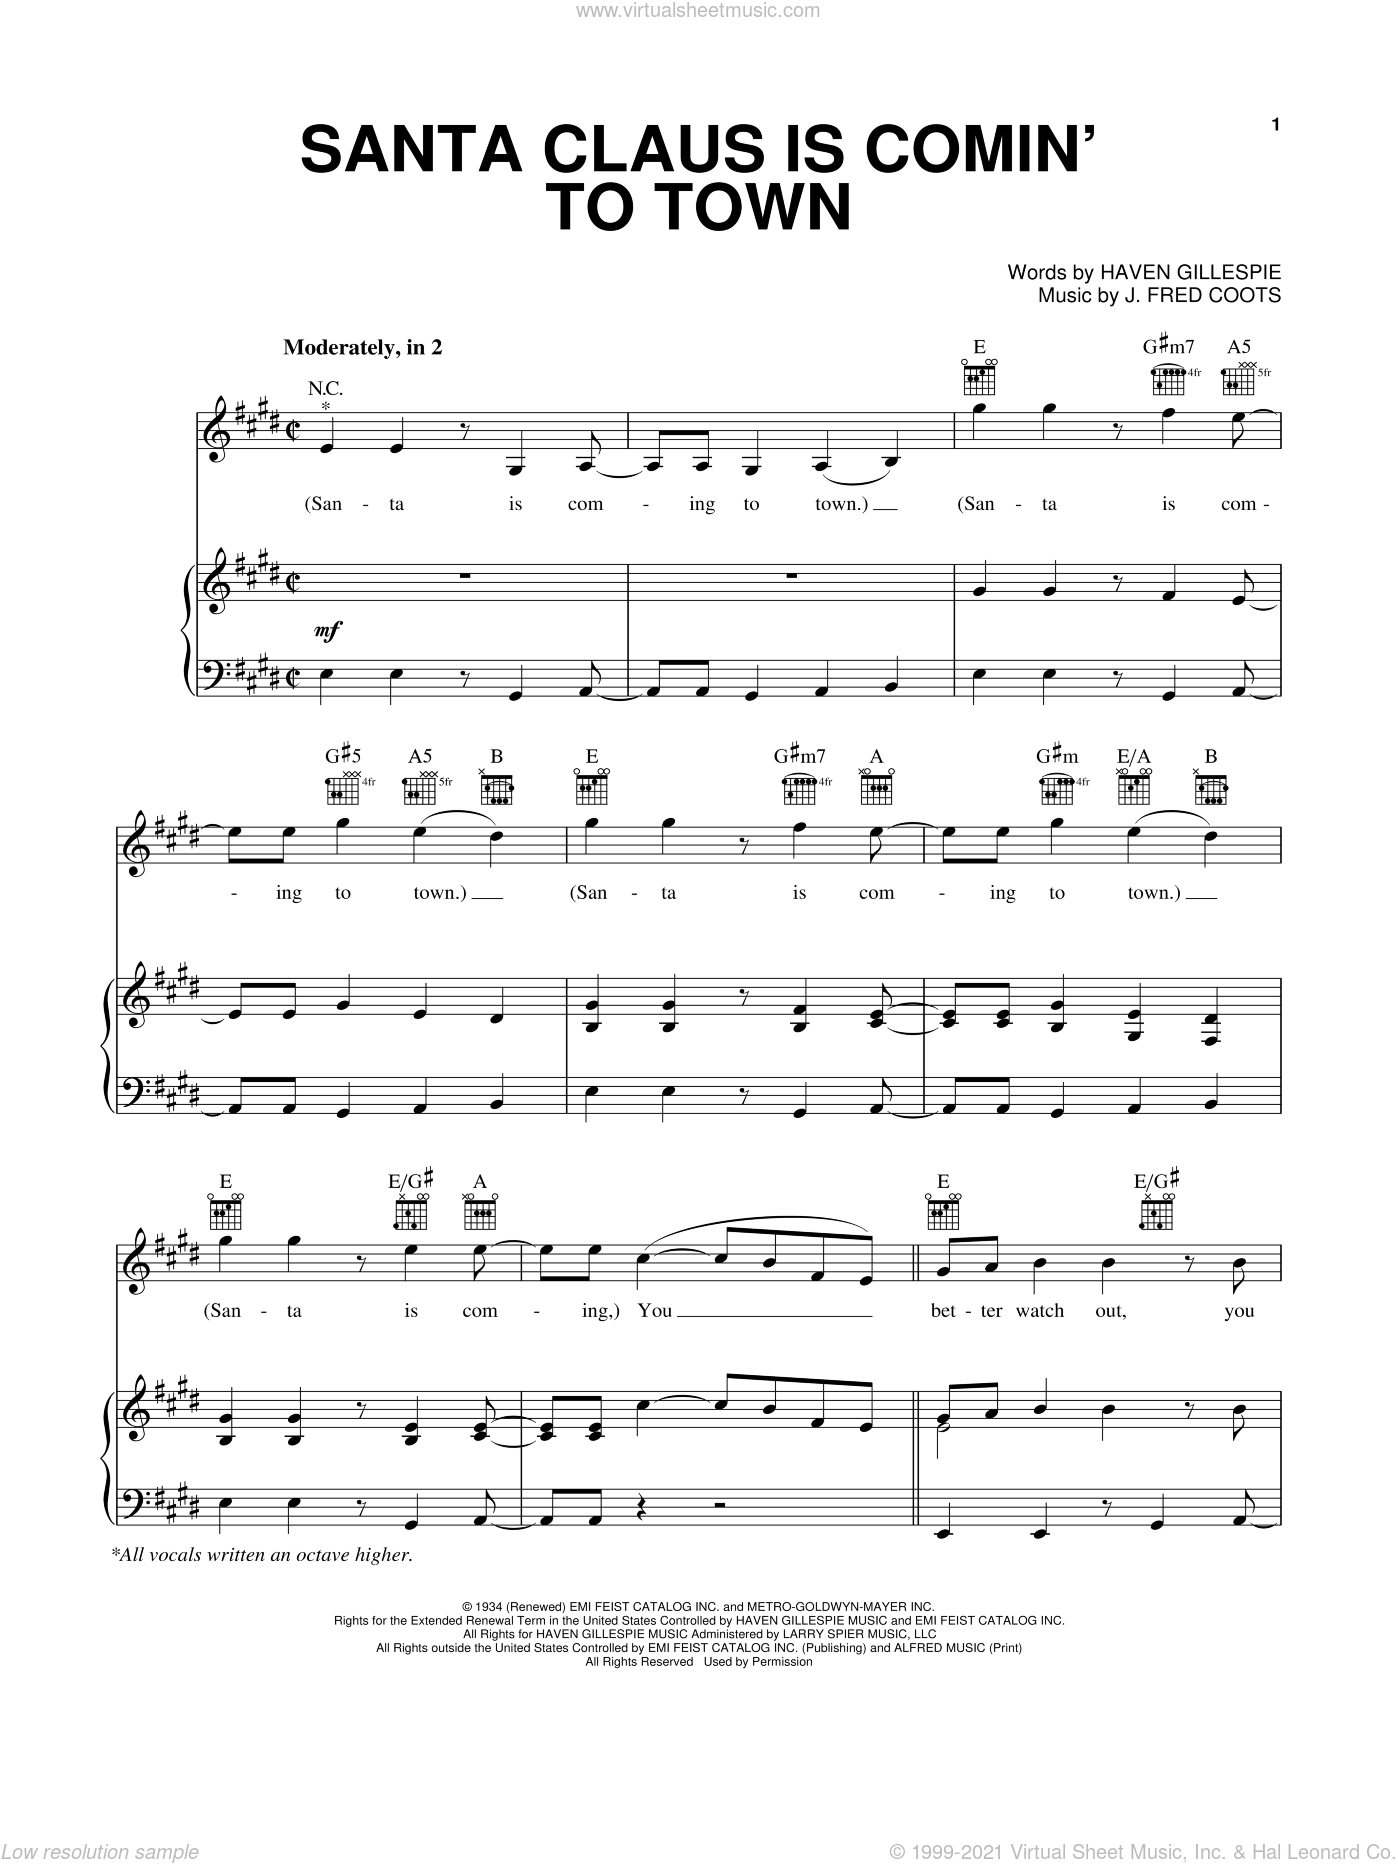 Santa Claus Is Comin' To Town sheet music for voice, piano or guitar by Pentatonix, Michael Buble, Steve Tyrell, The Band Perry, Wilson Phillips, Haven Gillespie and J. Fred Coots, intermediate skill level